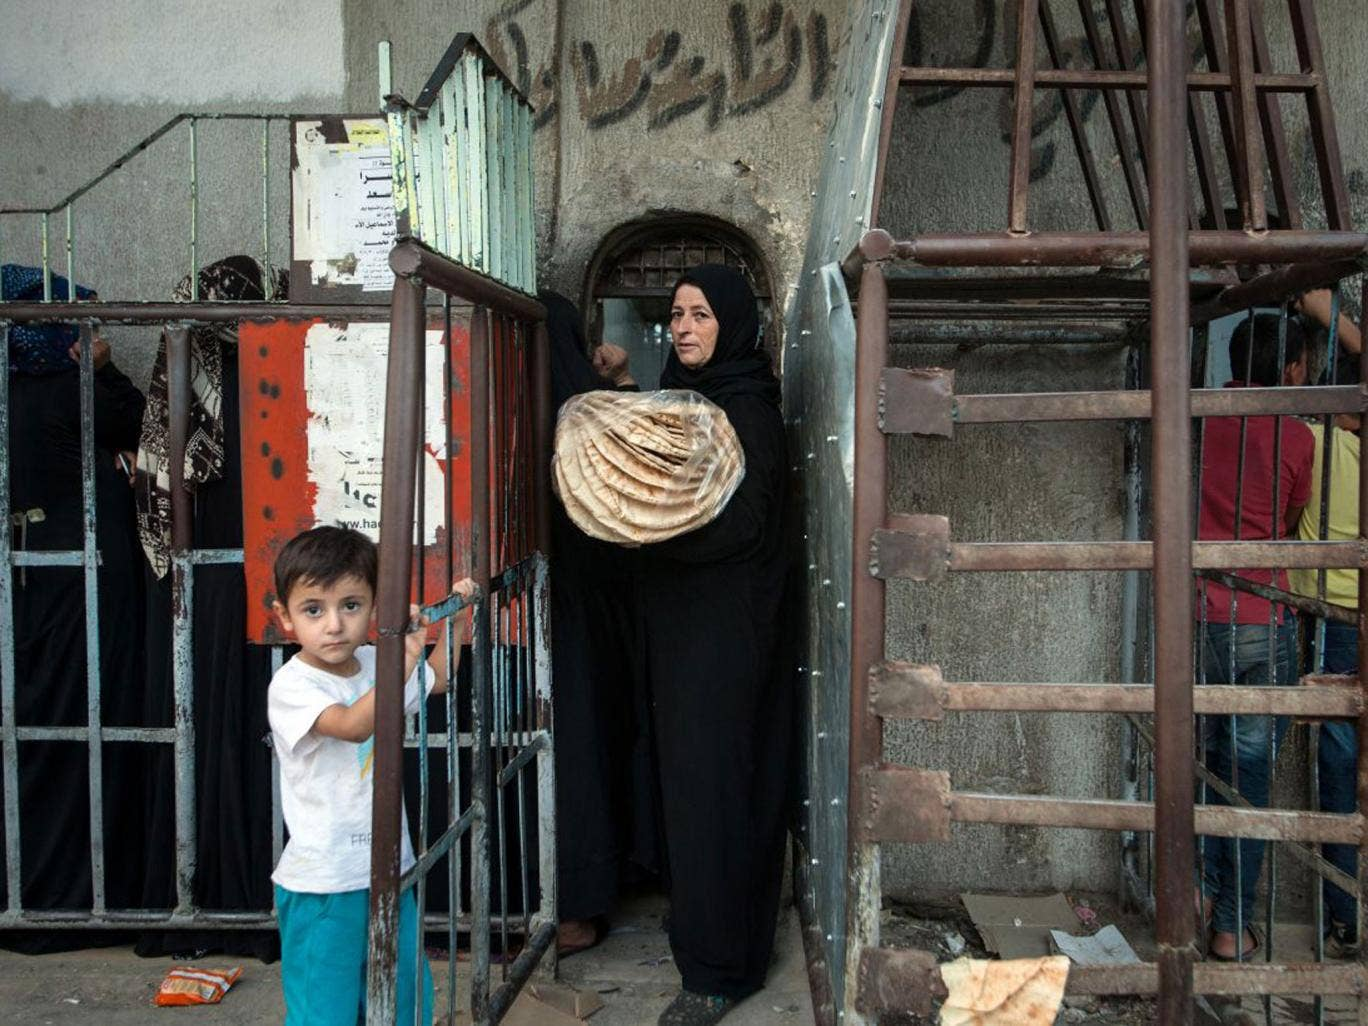 A Syrian woman carries bread from a bakery run by the Islamic rebel group 'Ahrar Al-Sham' amid claims the Assad regime has stopped aid getting through leaving residents to fend for themselves or starve